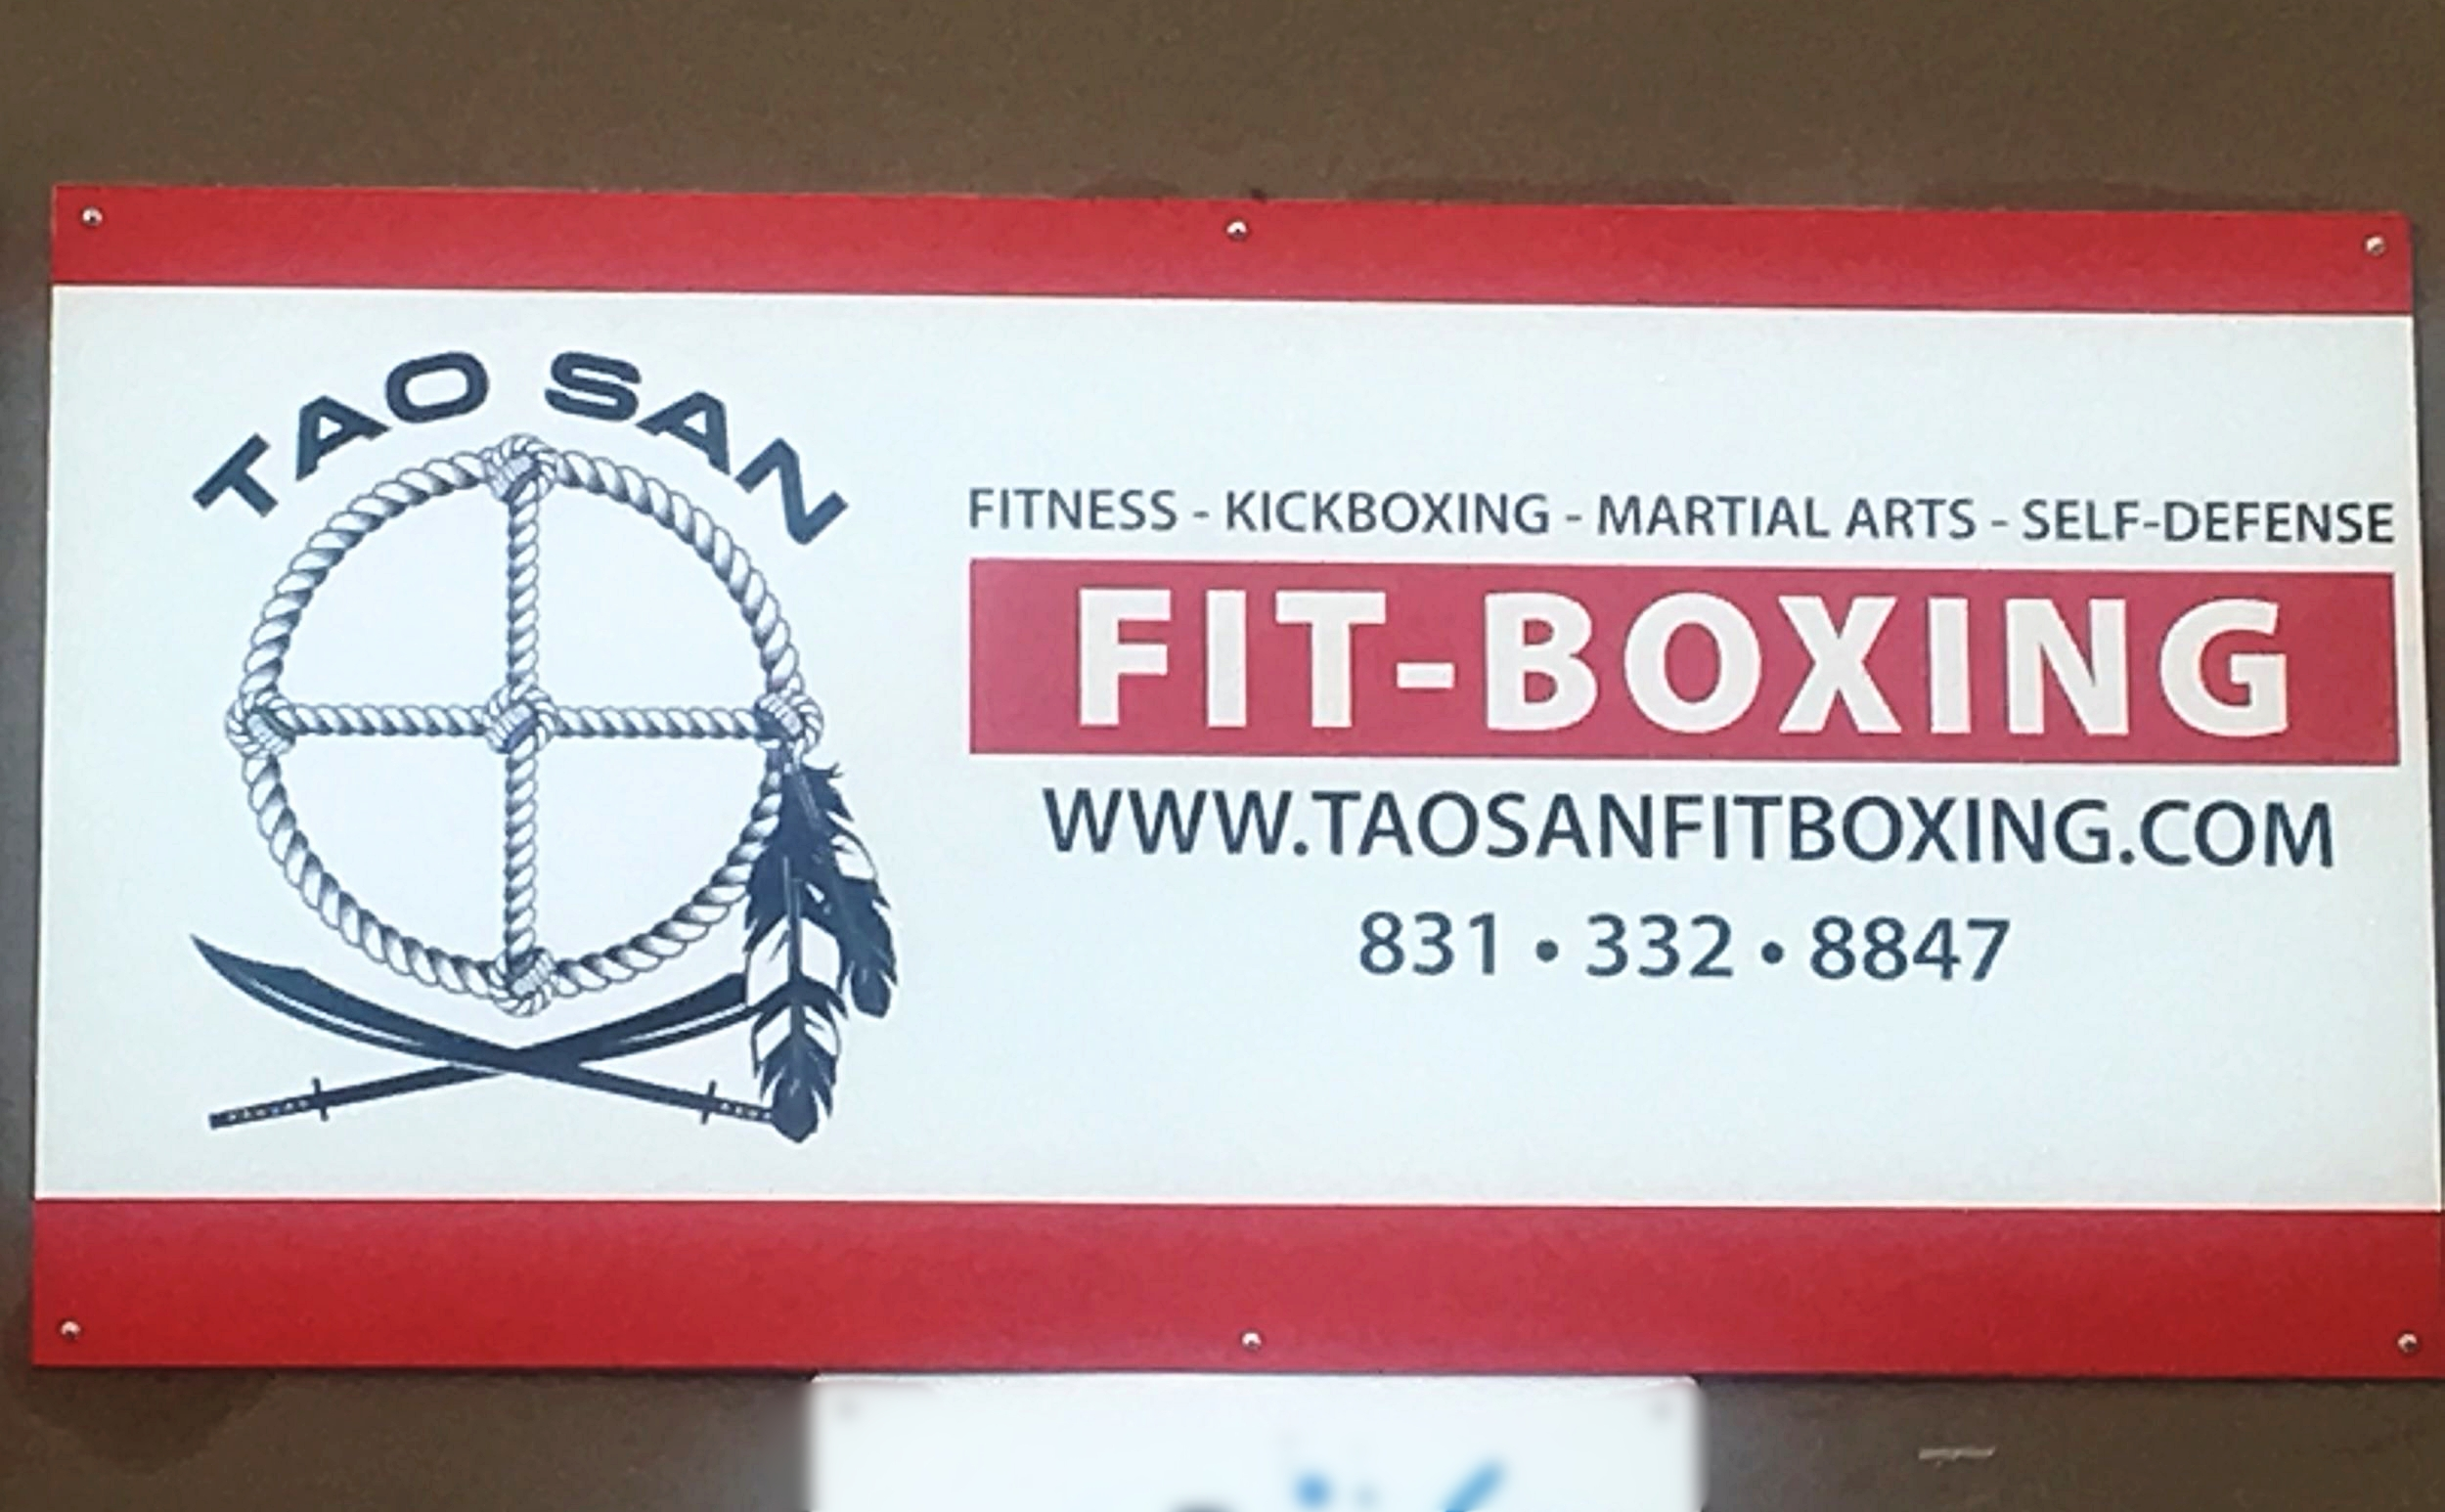 Tao San Fit-Boxing & Self-Defense